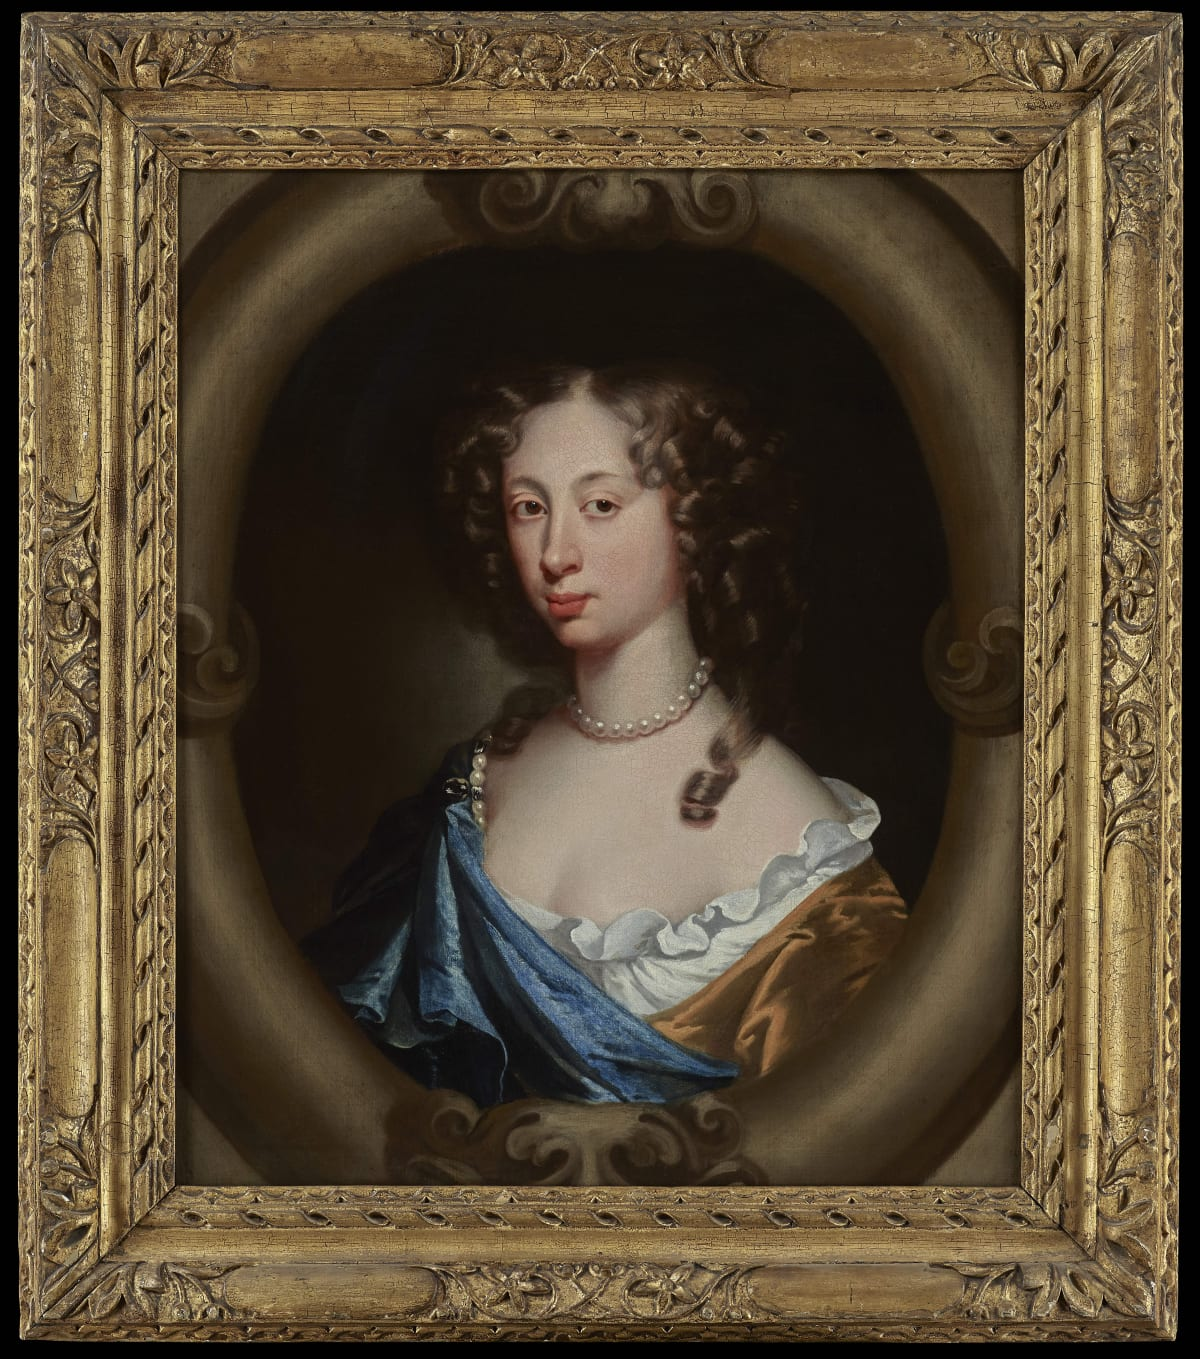 Attributed to Martinus van Grevenbroek (1646 – after 1670) An Unknown Lady of the Dalison family, c.1670s Oil on canvas 28 x 23 in. (72 x 60 cm.)